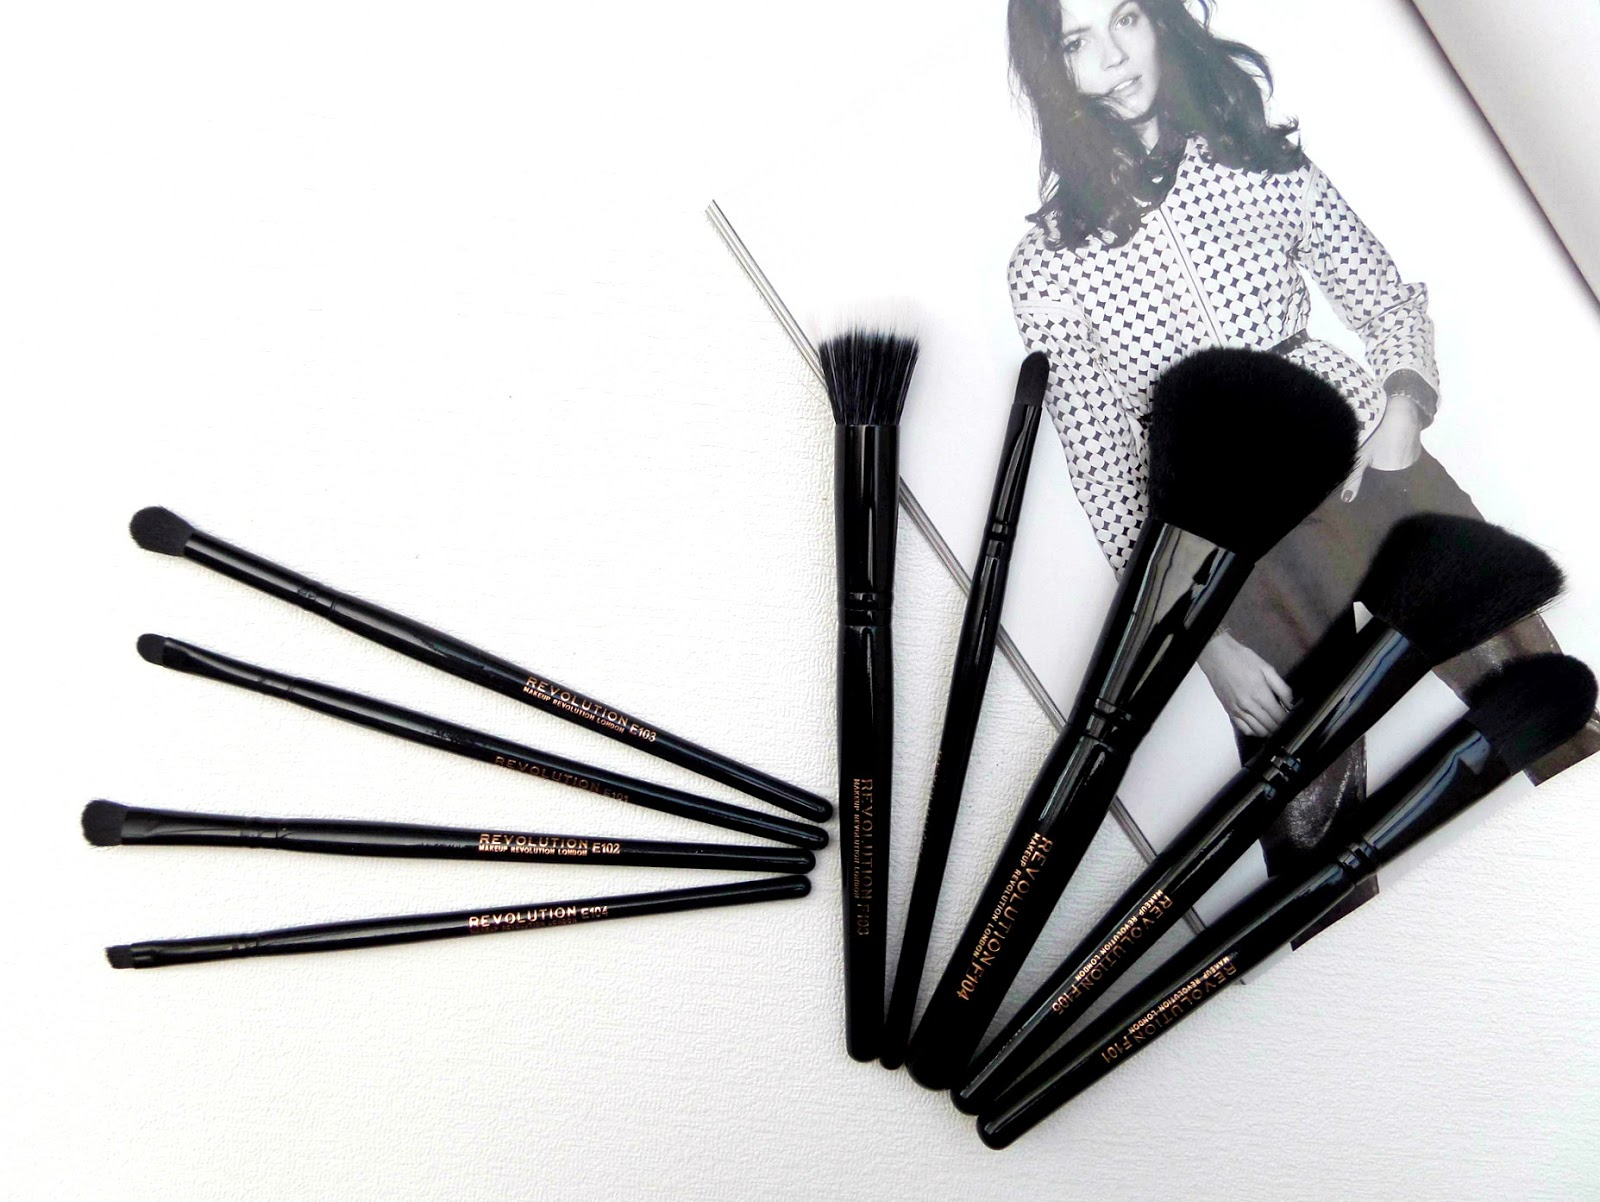 Makeup Revolution Makeup Brushes The review of the entire range